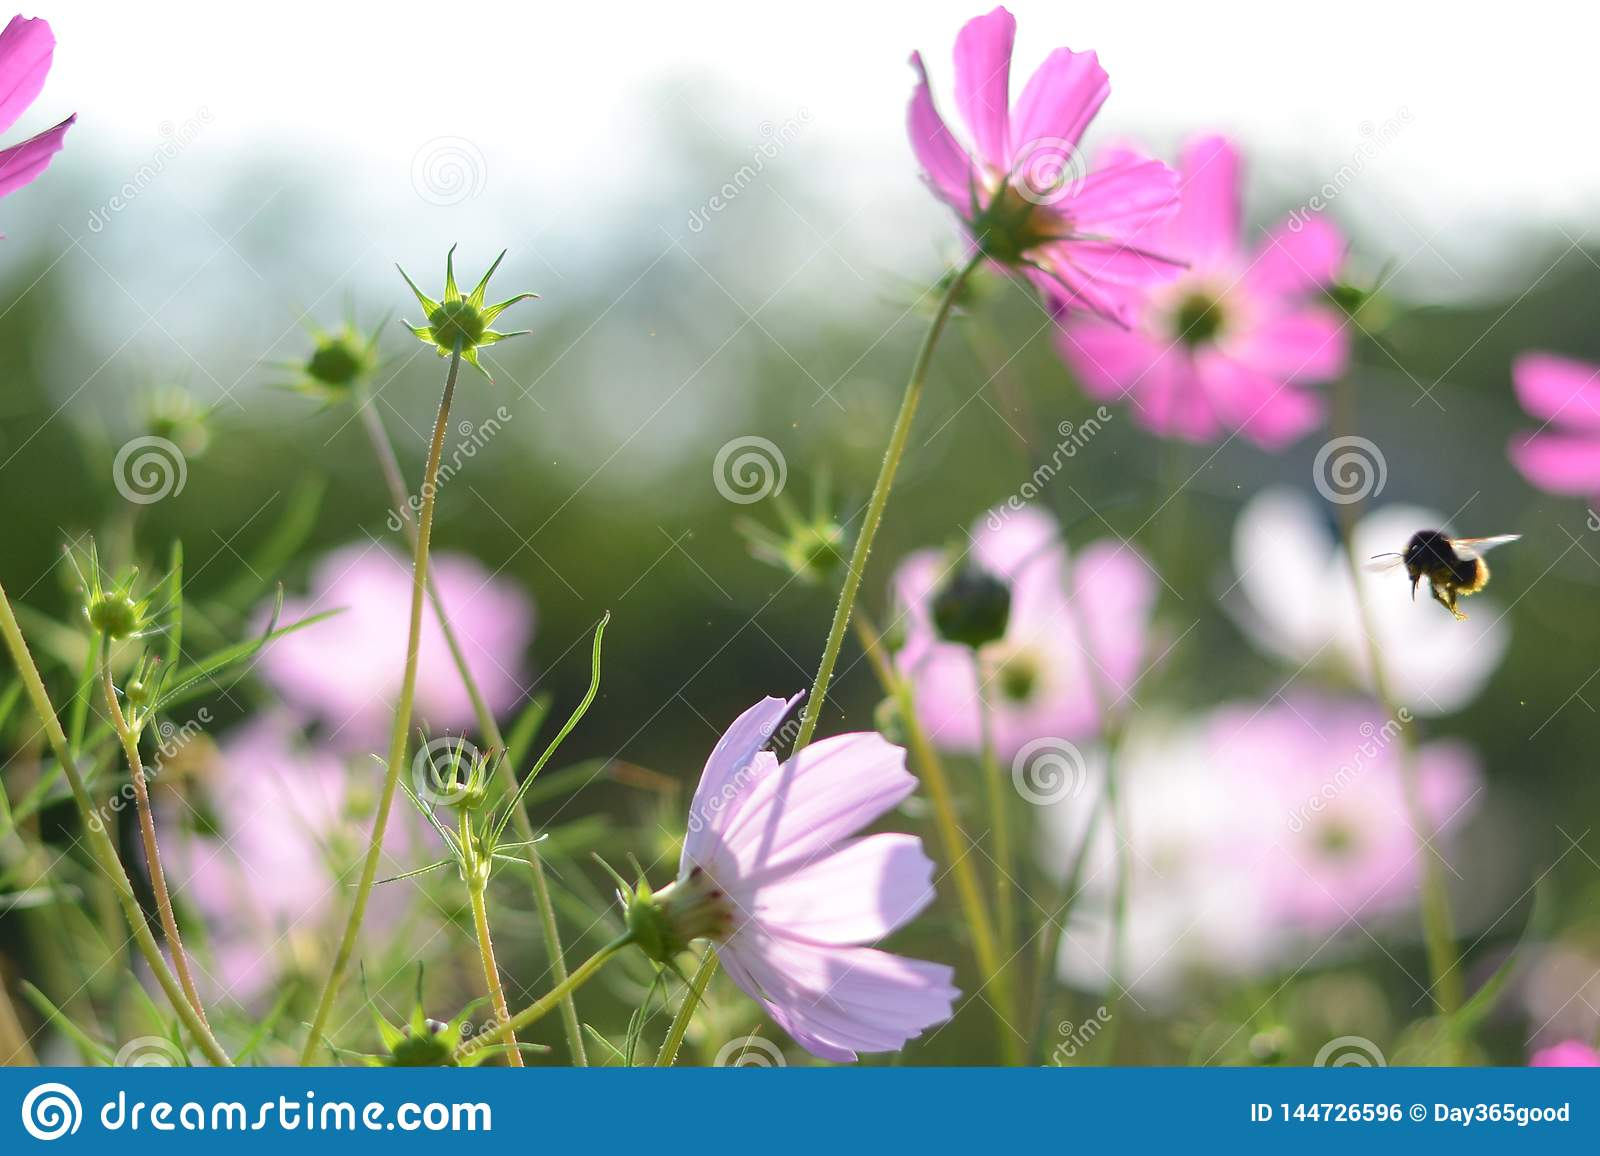 Pink flowers cosmos bloom in morning light. Soft focus. Field of cosmos flower in sunshine